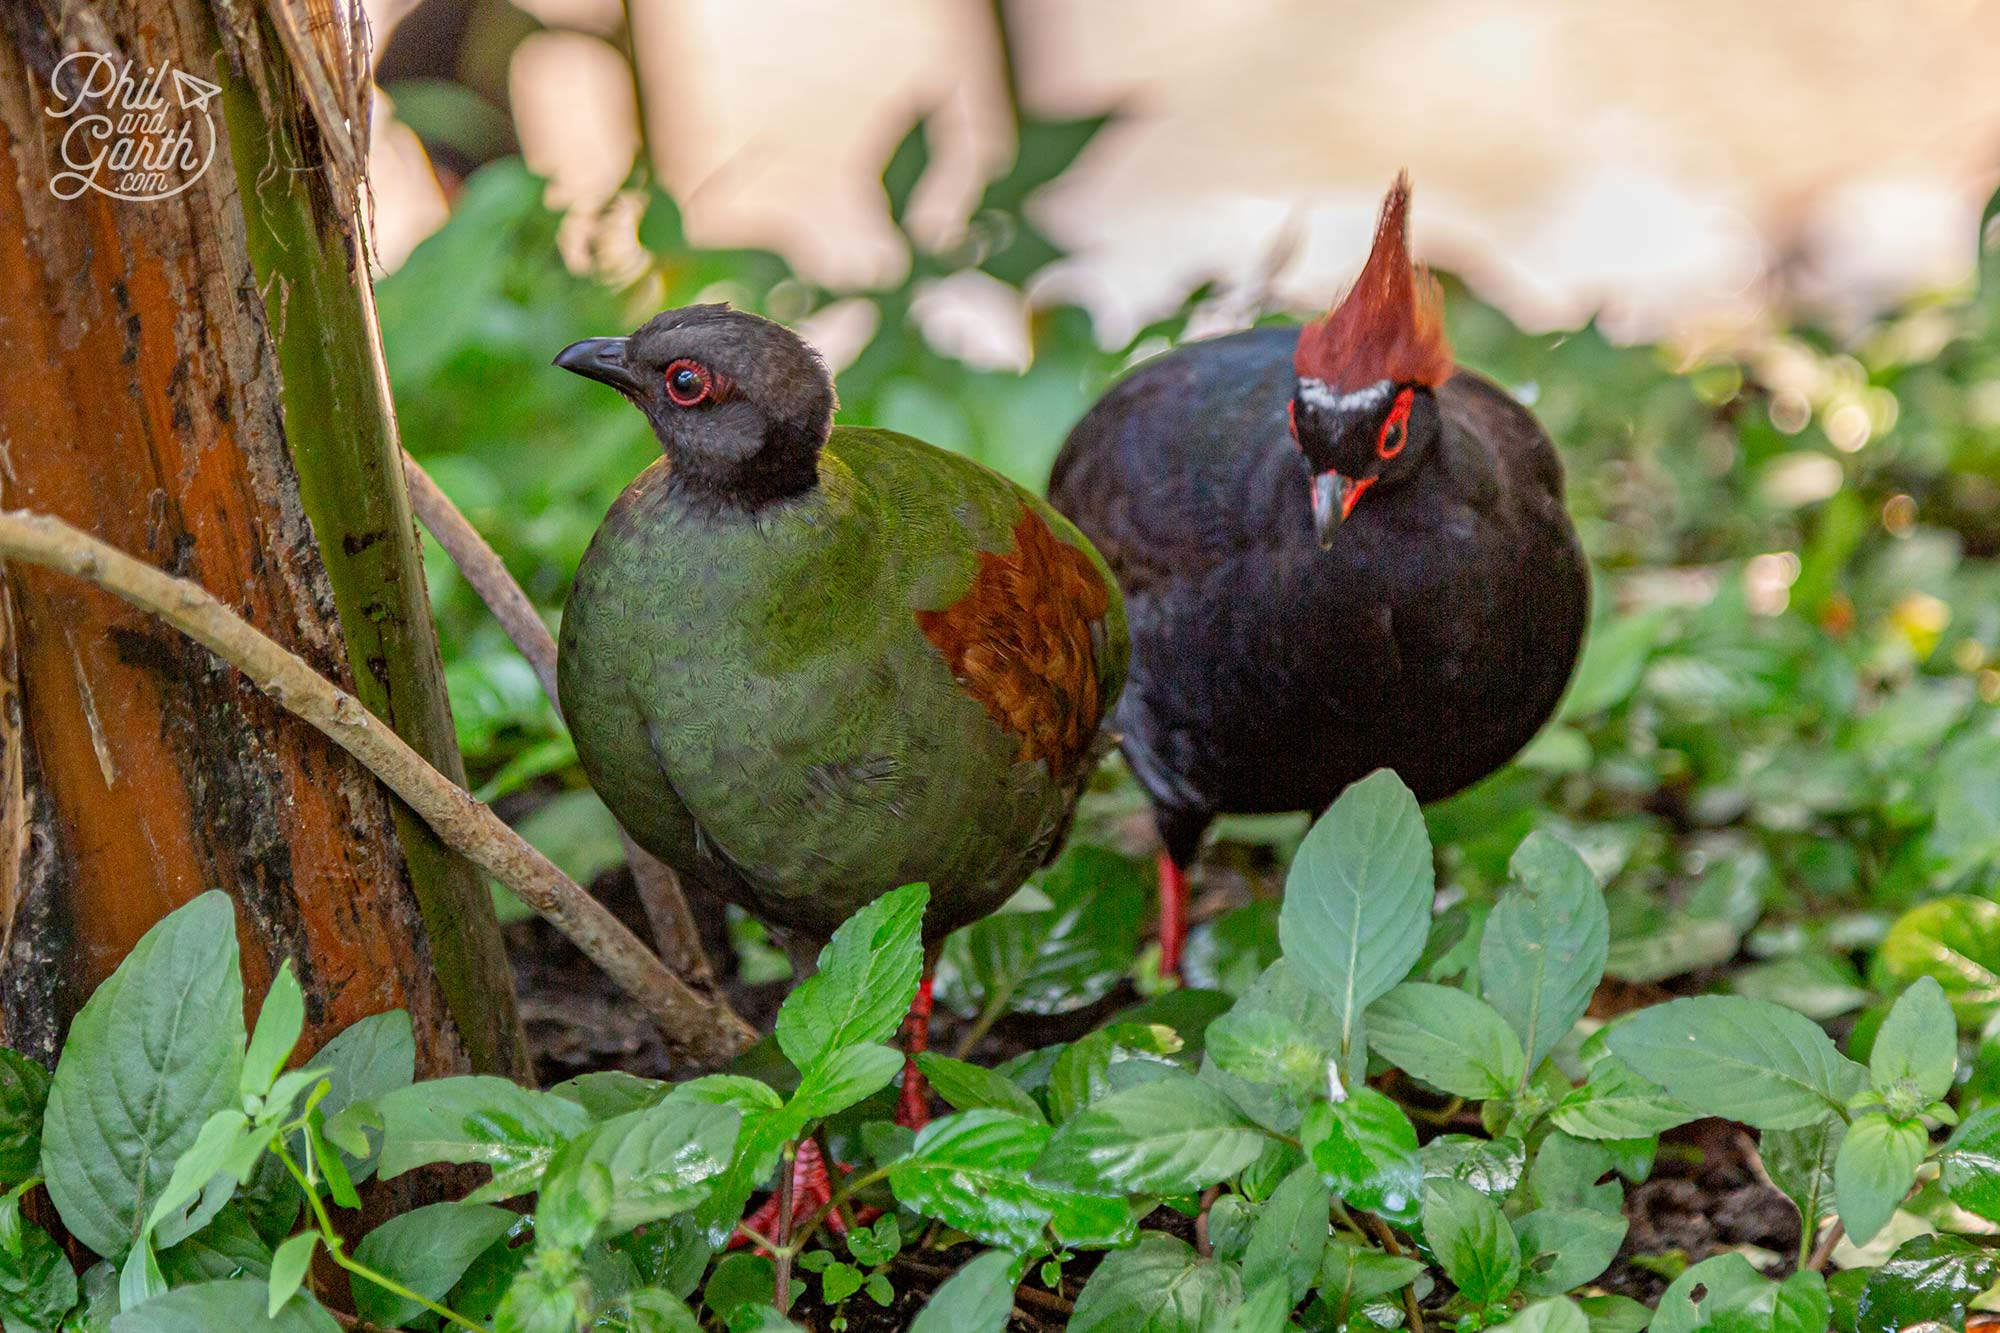 Roul-roul partridges - usually found in the rainforests of Myanmar, Thailand, Malayasia and Borneo